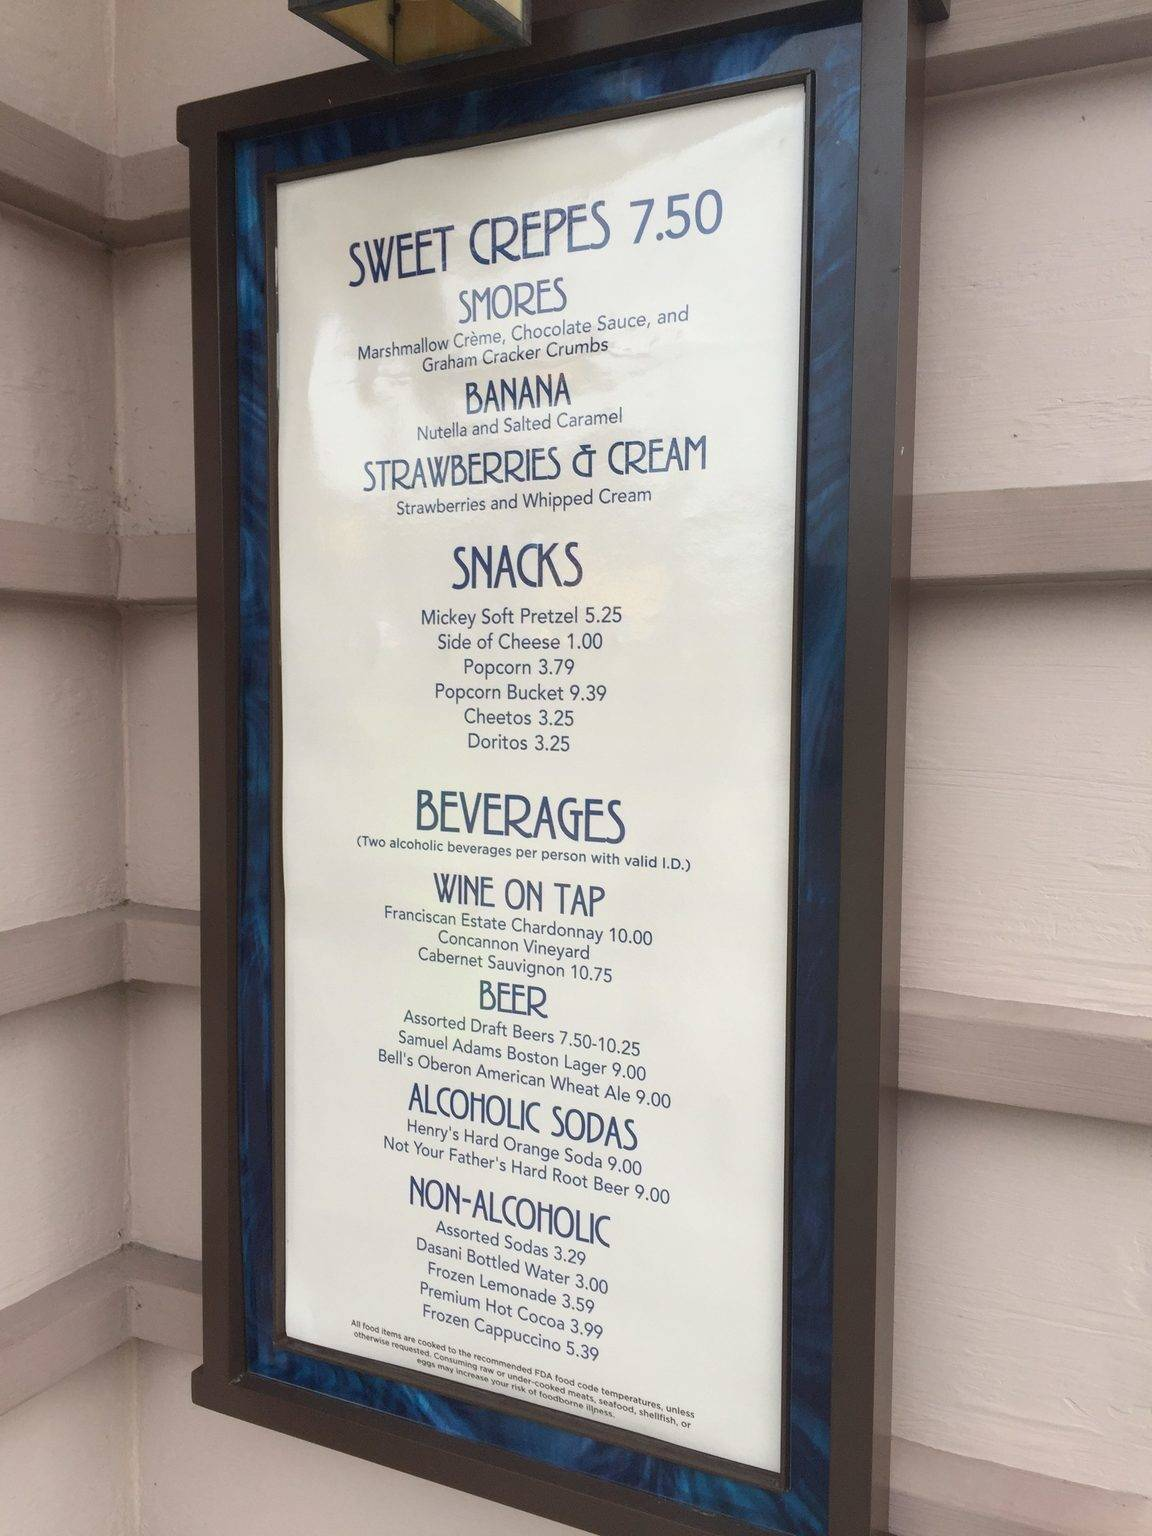 Crepes Return to AristoCrepes at Disney Springs with New Menu